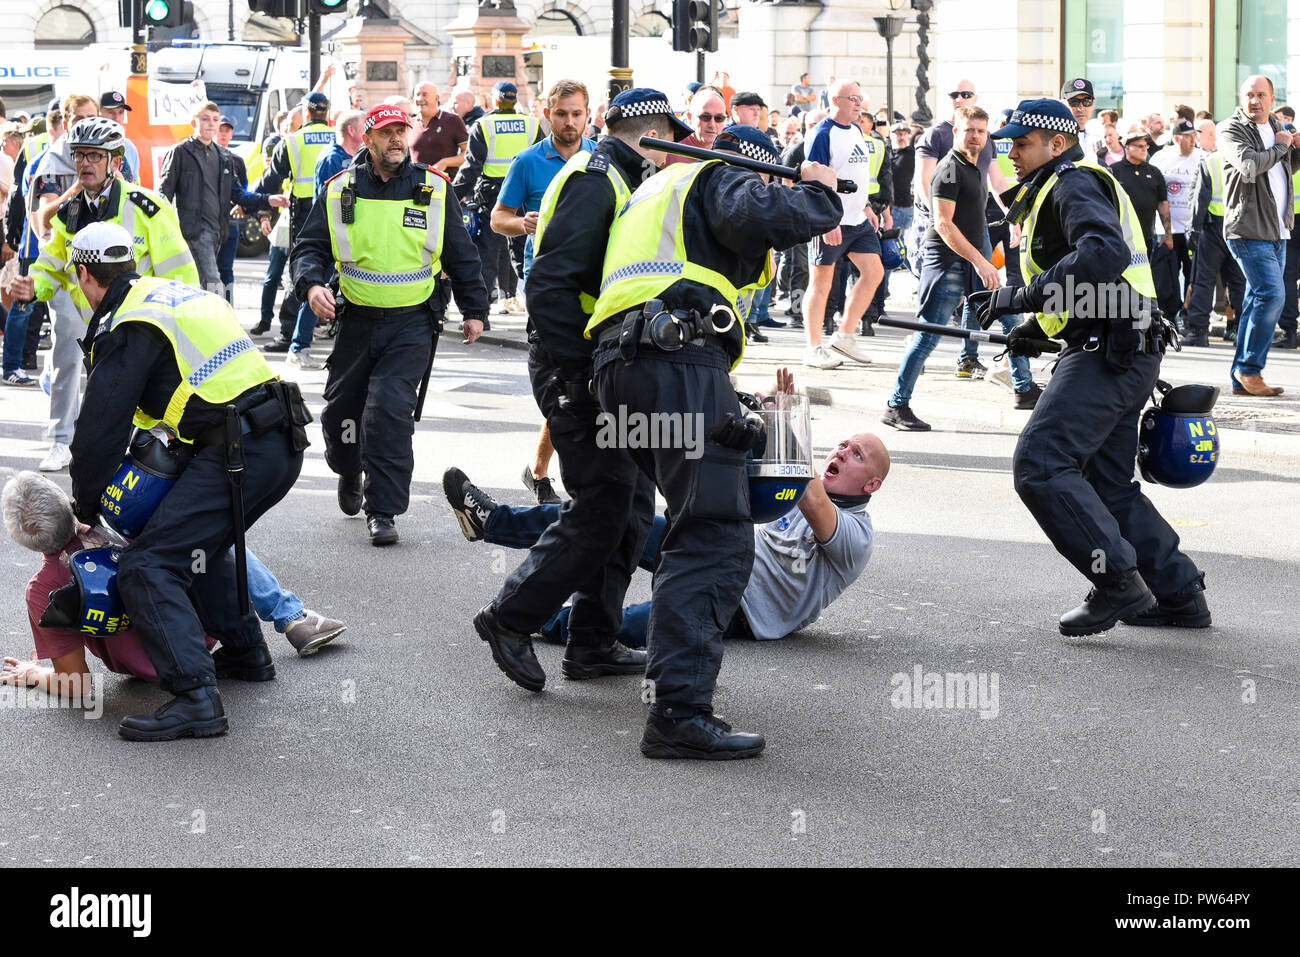 democratic-football-lads-alliance-dfla-marching-towards-parliament-london-in-protest-demonstration-marchers-broke-through-a-police-cordon-and-scuffles-took-place-PW64PY.jpg